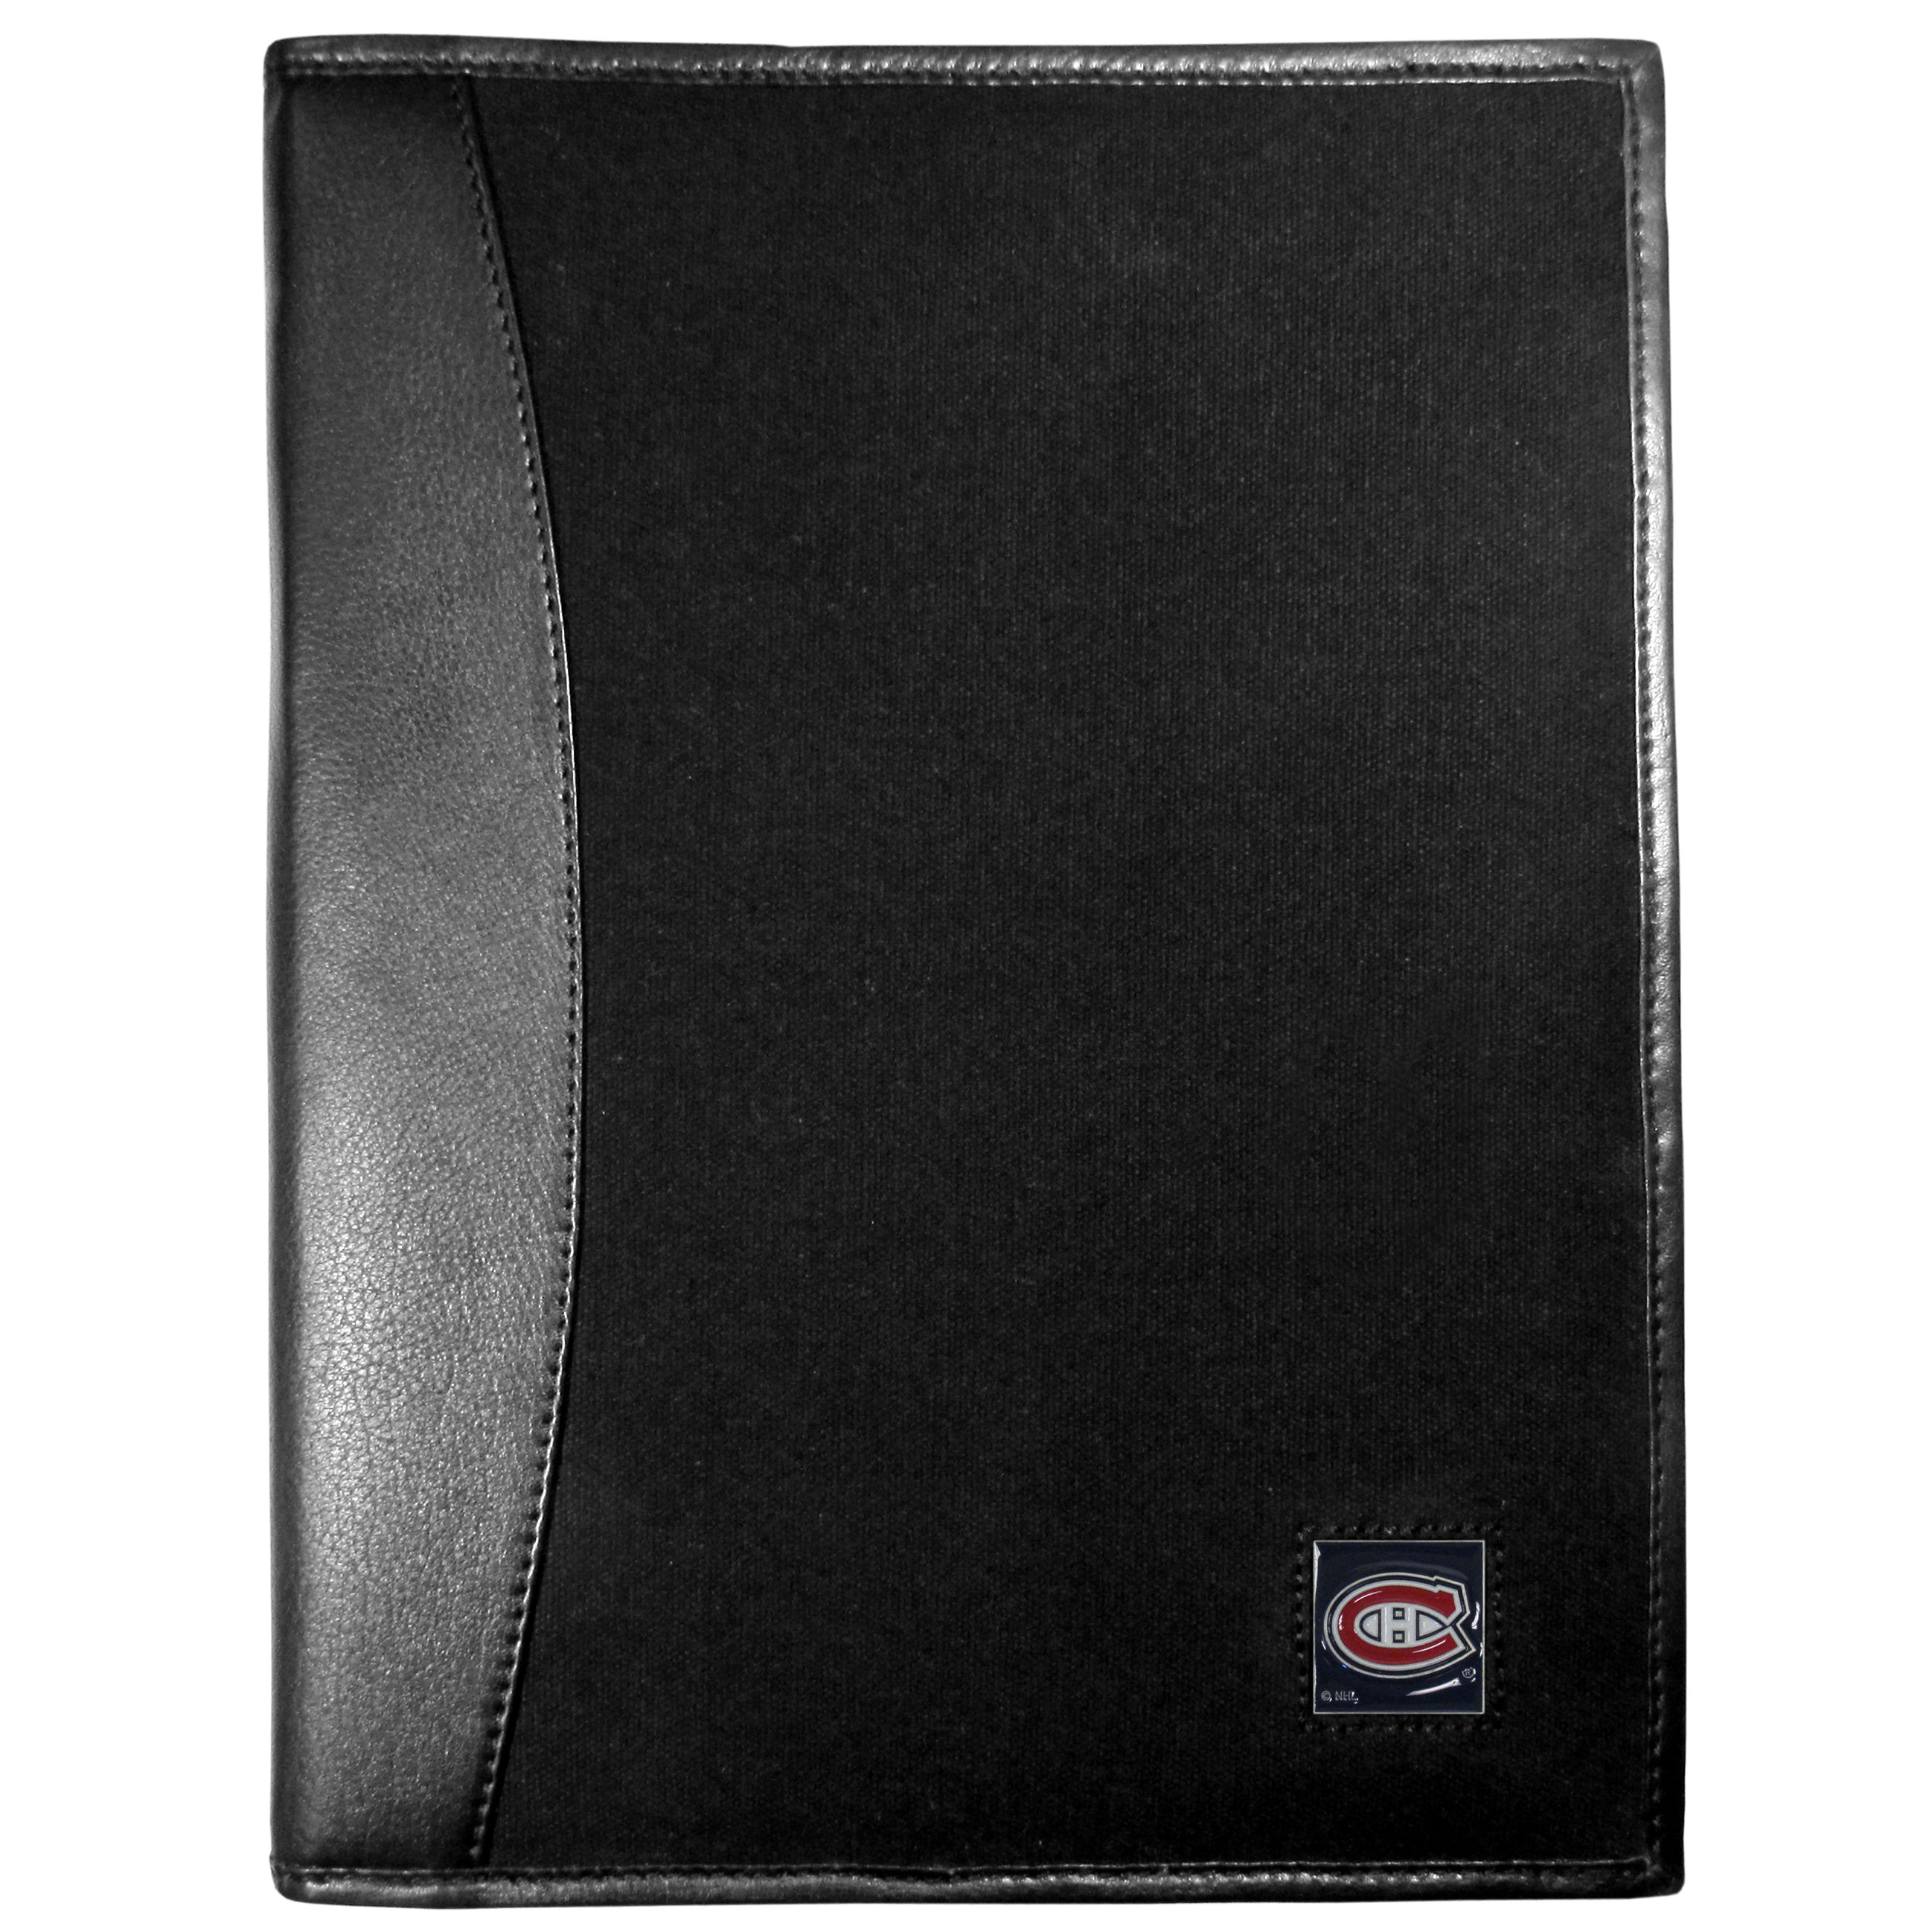 Montreal Canadiens® Leather and Canvas Padfolio - Our leather and canvas padfolio perfectly blends form and function. The attractive portfolio is bound in fine grain leather with an attractive canvas finish and the interior is a soft nylon. This high quality business accessory also features a fully cast metal Montreal Canadiens® emblem that is subtly set in the corner of the organizer. It is packed with features like 6 card slots for badges, business cards, hotel keys or credit cards and ID with a large pocket for loose papers and a writing tablet slot making it a must-have for the professional on the go.